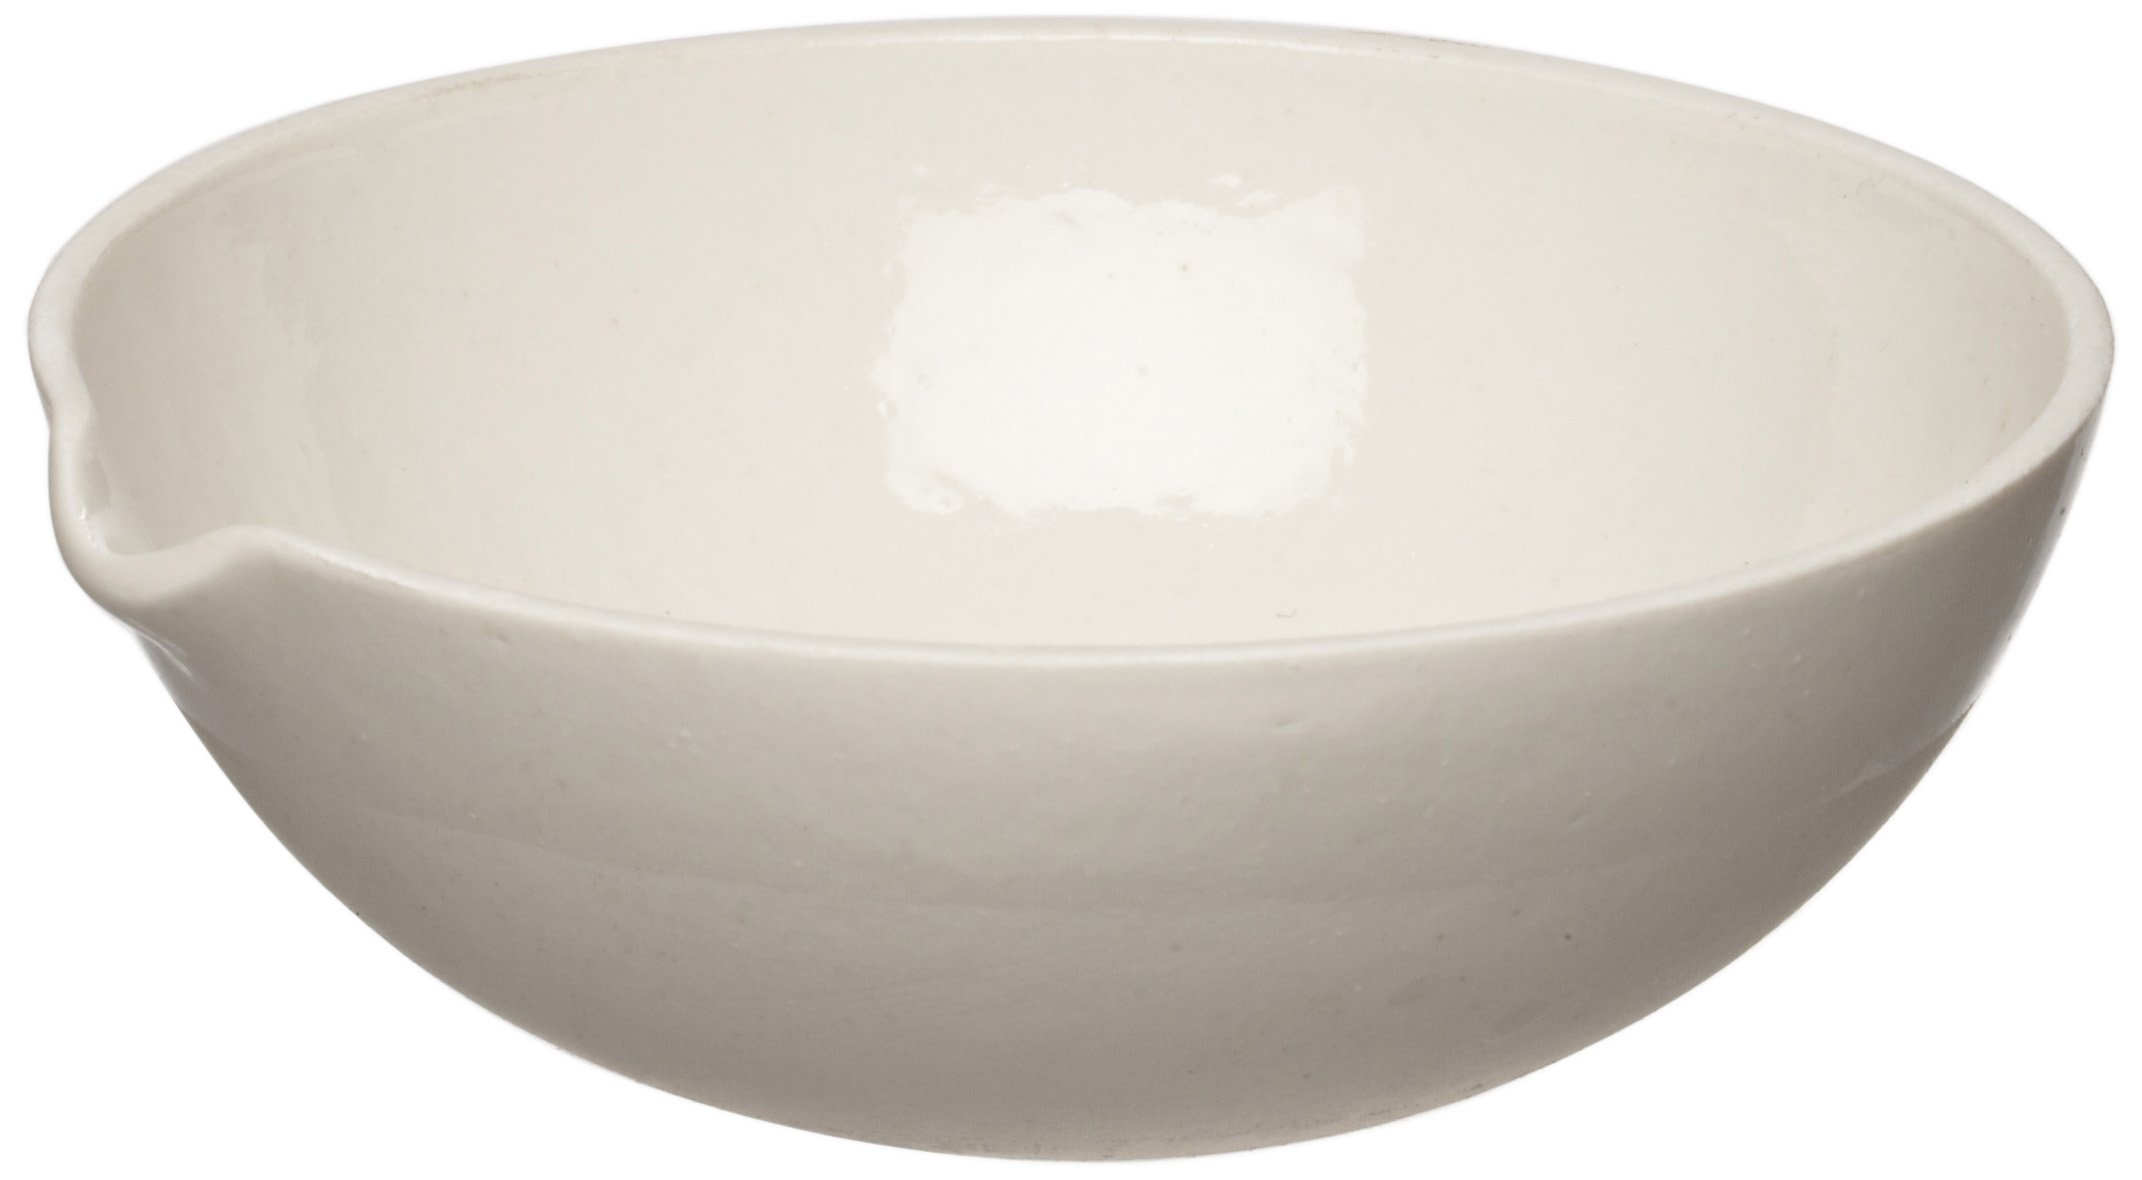 American Educational Porcelain Evaporation Dish, 104mm Diameter X 40mm Height, 150ml Capacity